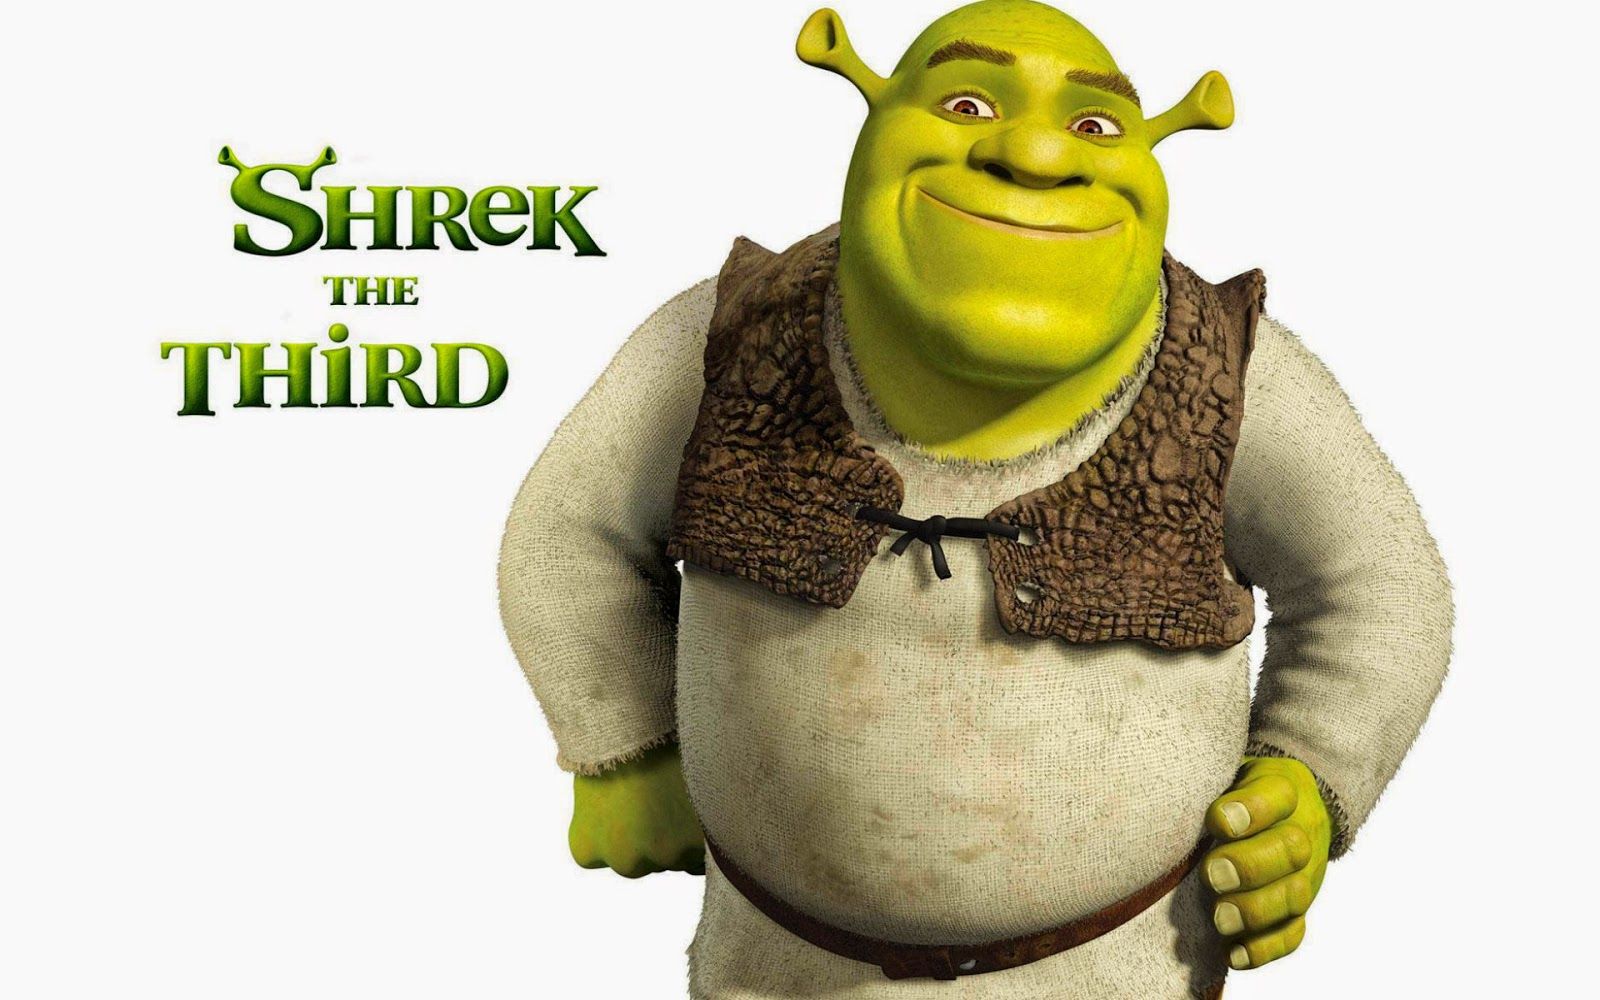 Sherk wallpapers HD - Beautiful wallpapers collection 2014